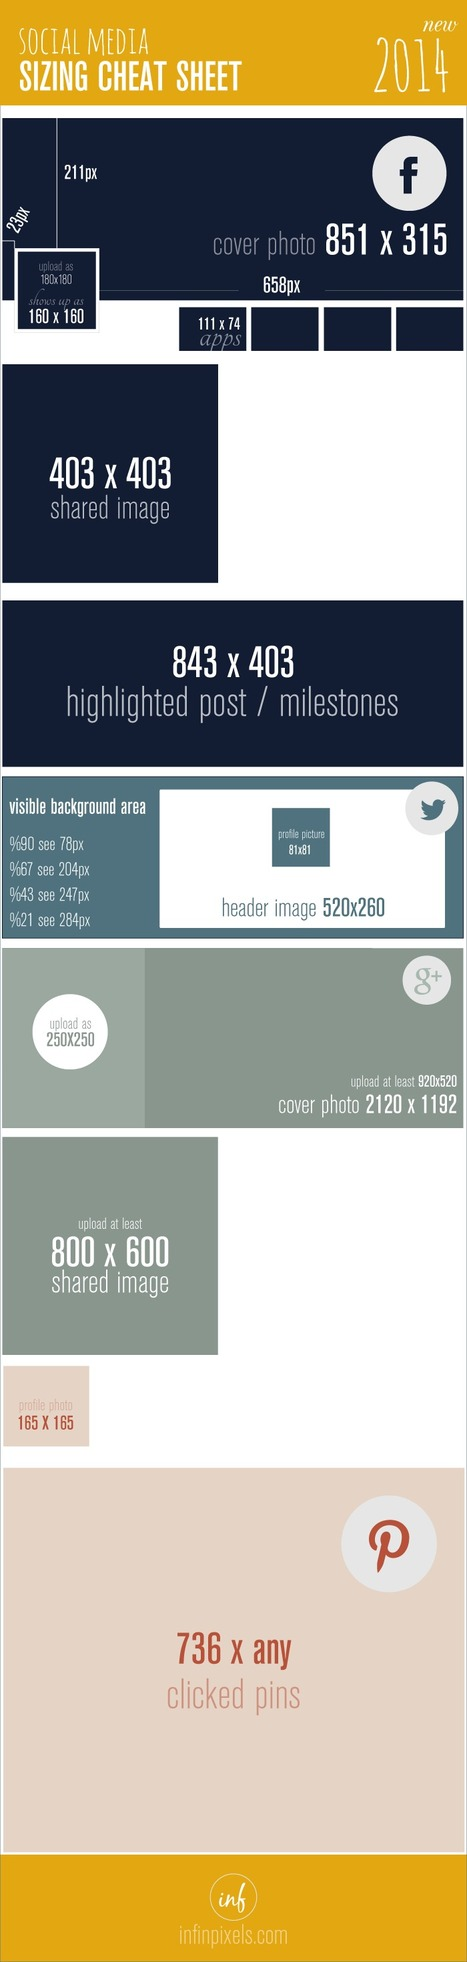 Social Media Sizing Cheat Sheet / 2014 | Infographies social media | Scoop.it